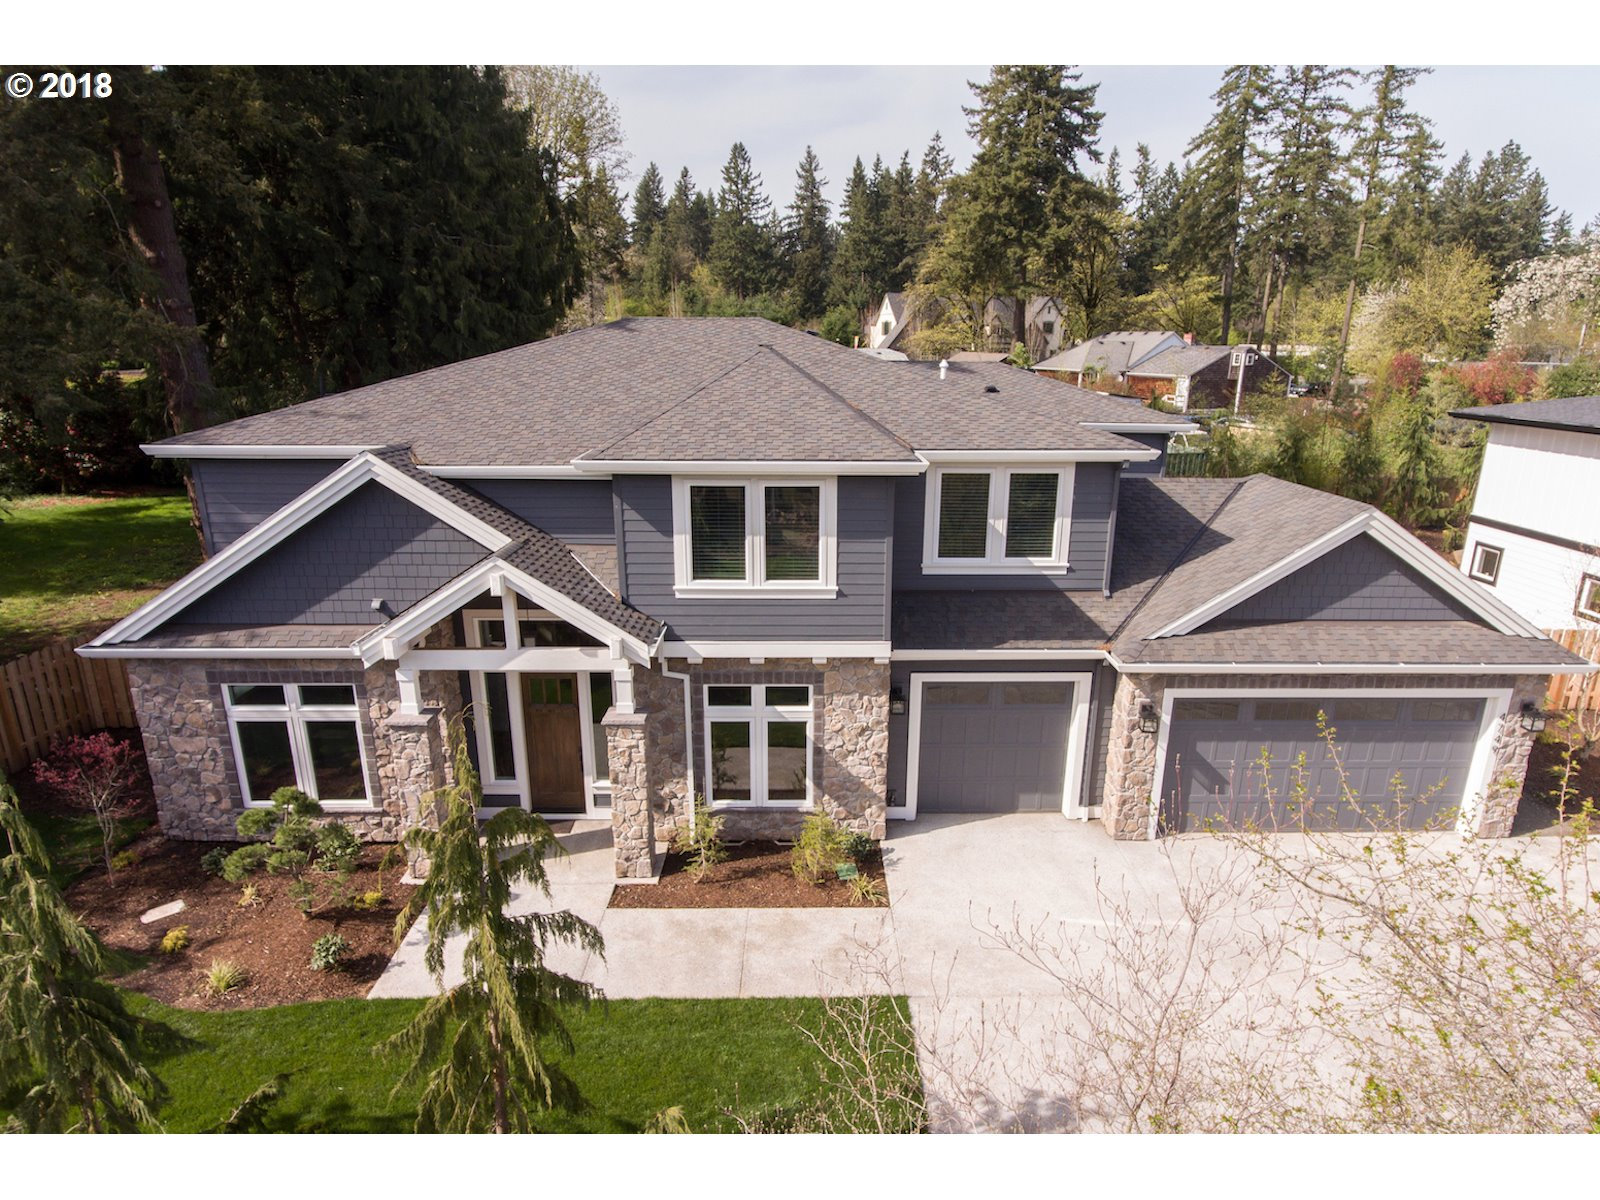 4749 UPPER DR, Lake Oswego, OR 97035